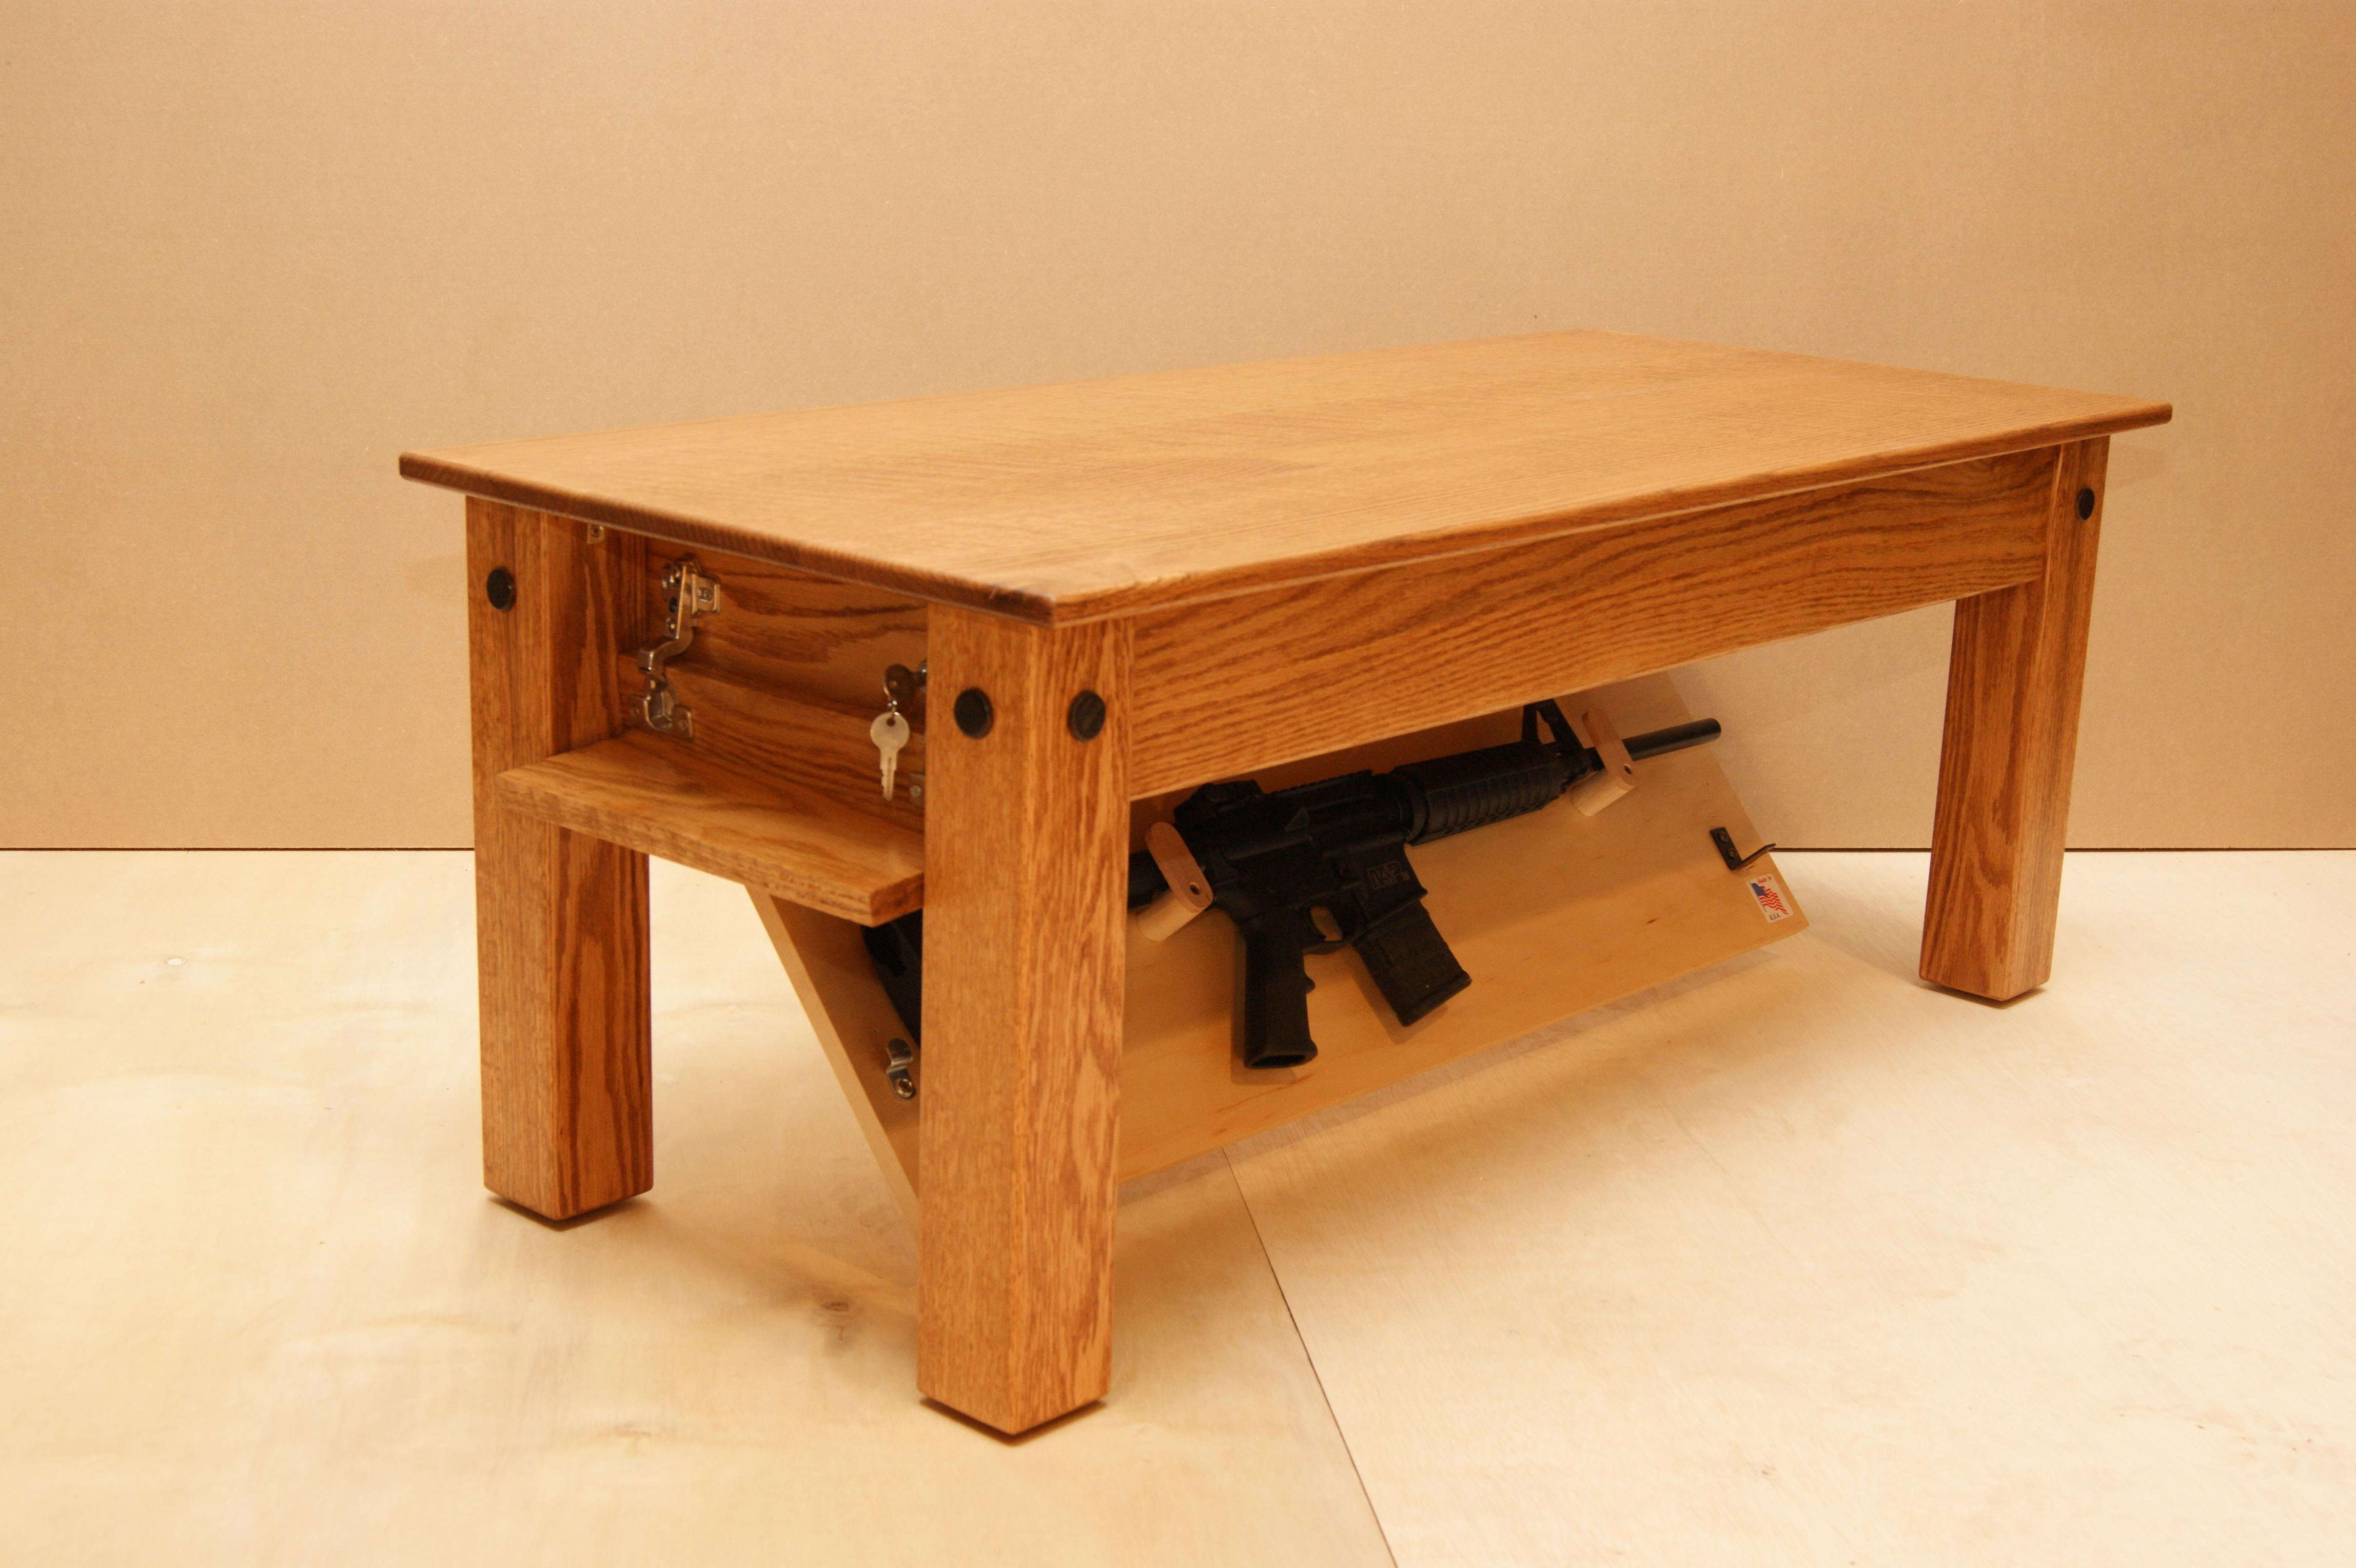 Stash your gat in one of these gunconcealing furniture